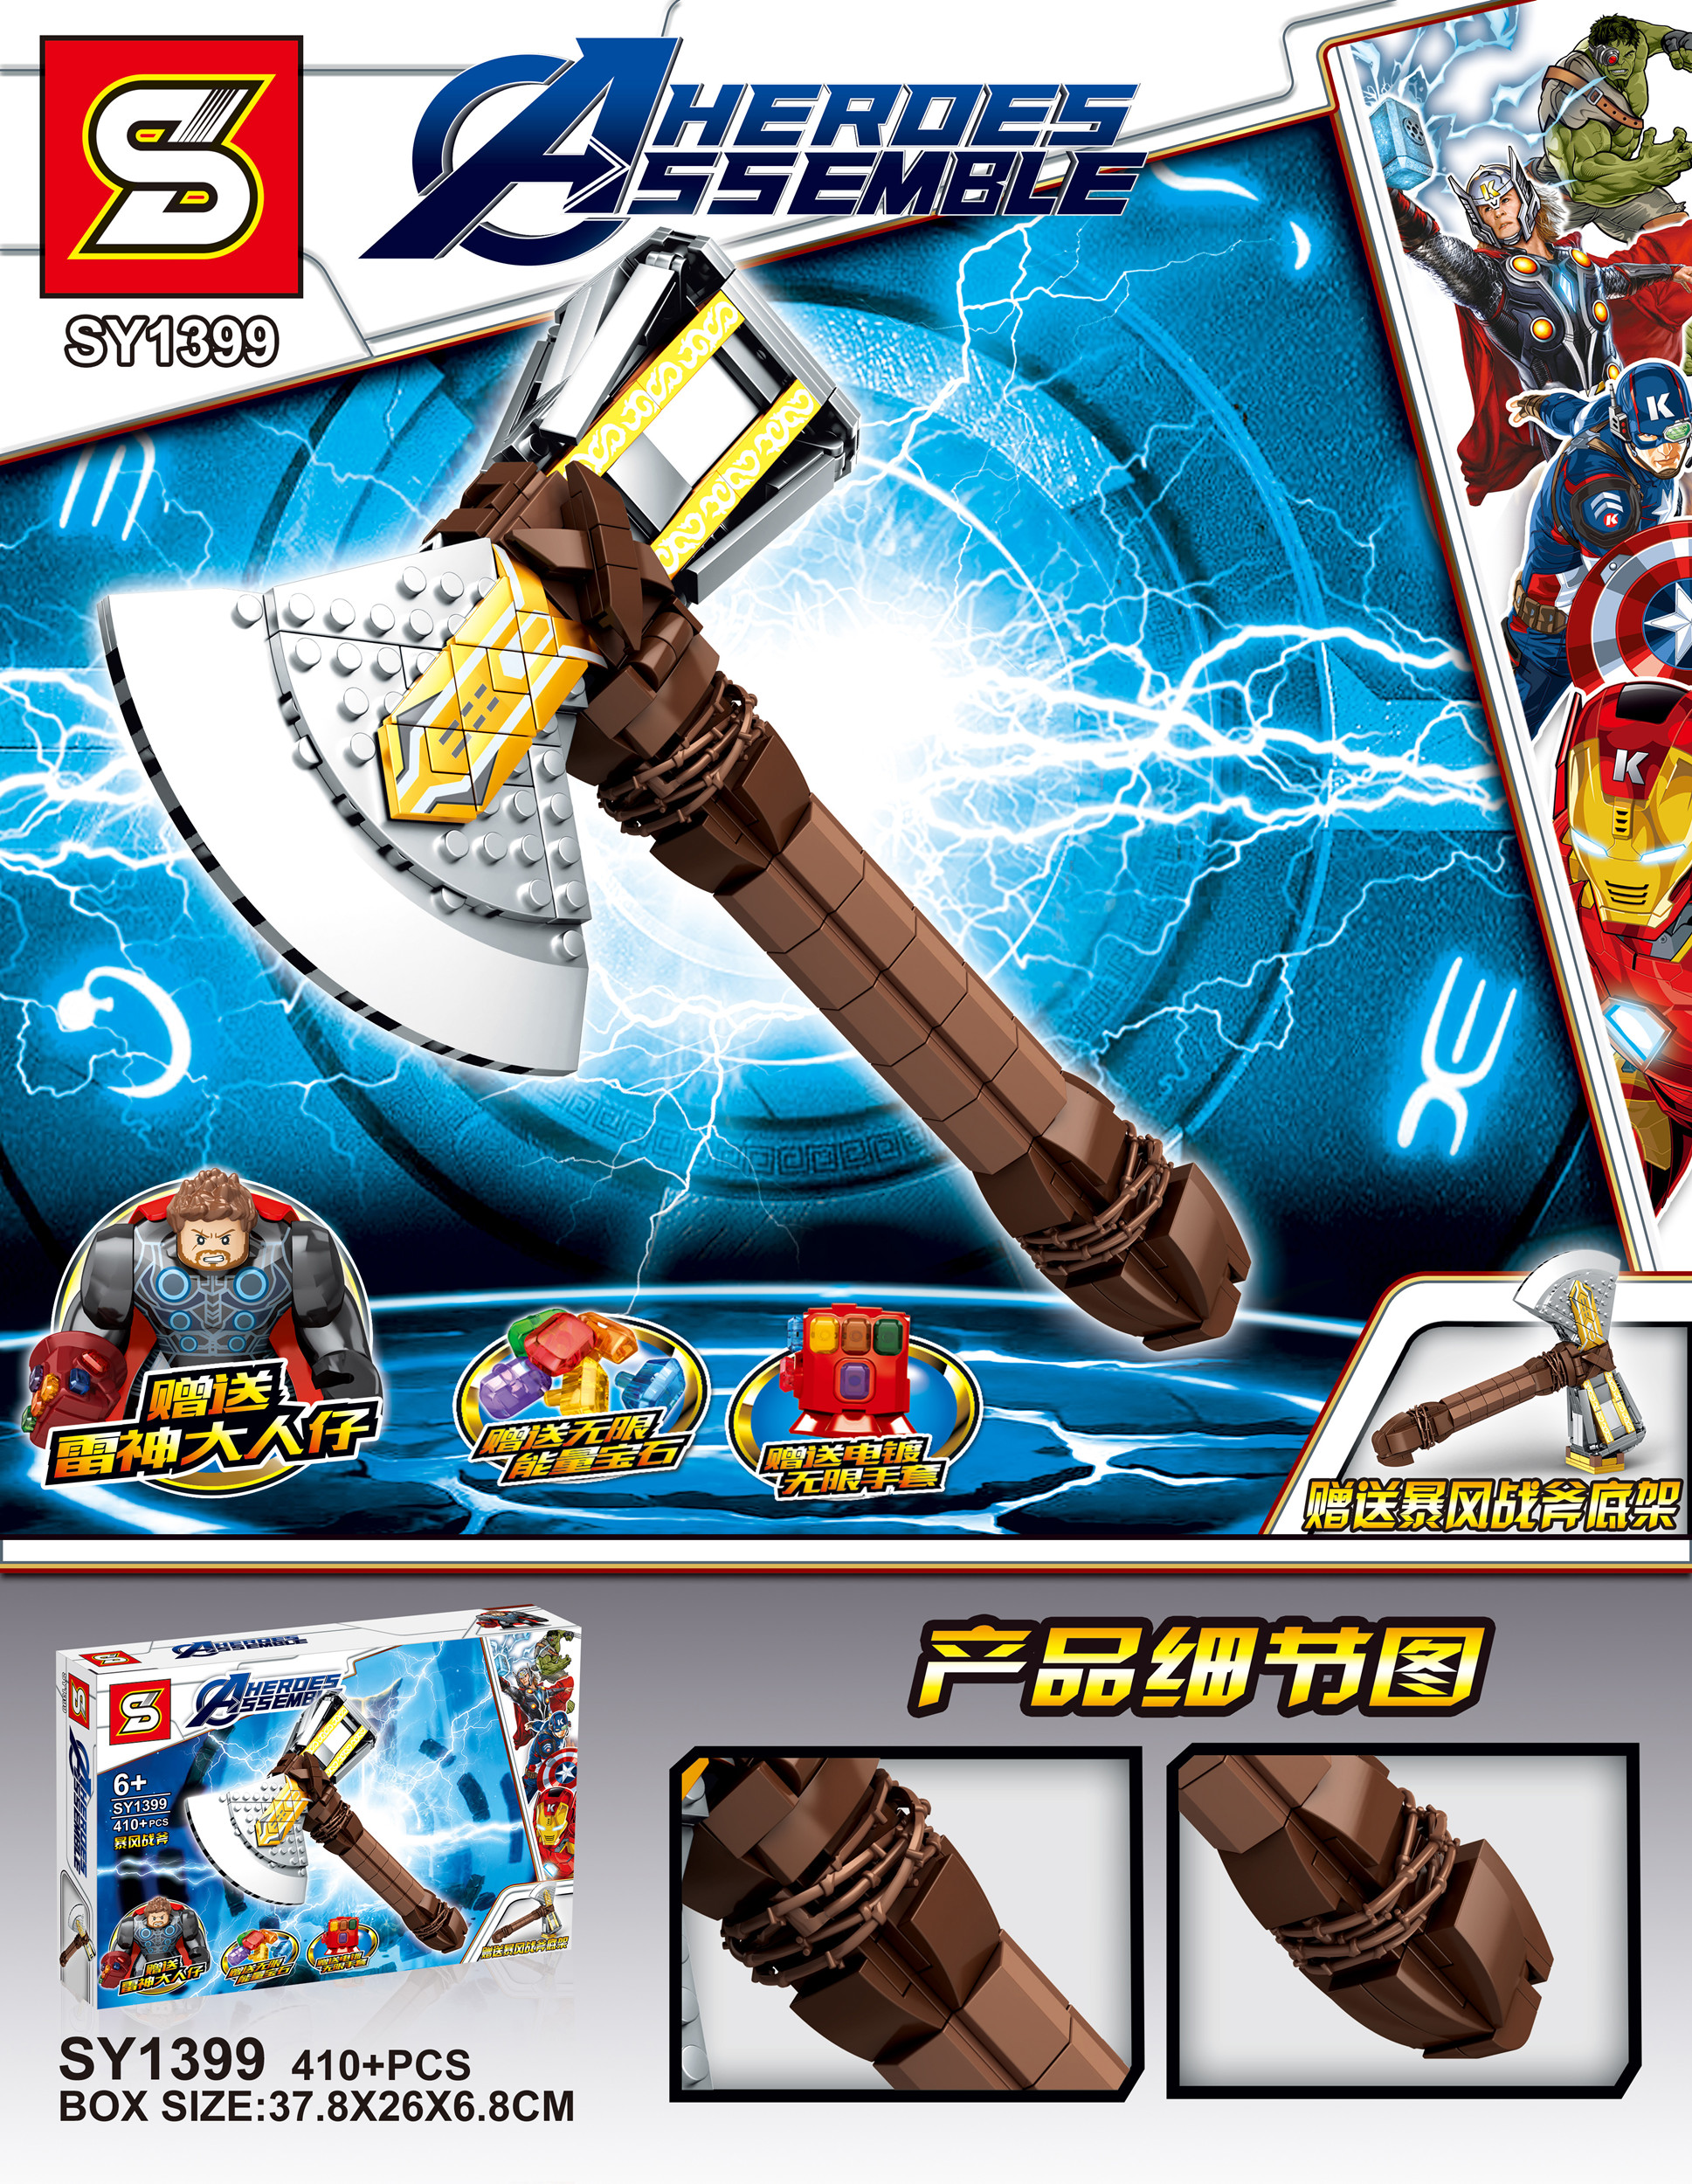 Custom Avengers 4 Thor Axe Stormbreaker Axe Building Blocks Toy Set 410 Pieces